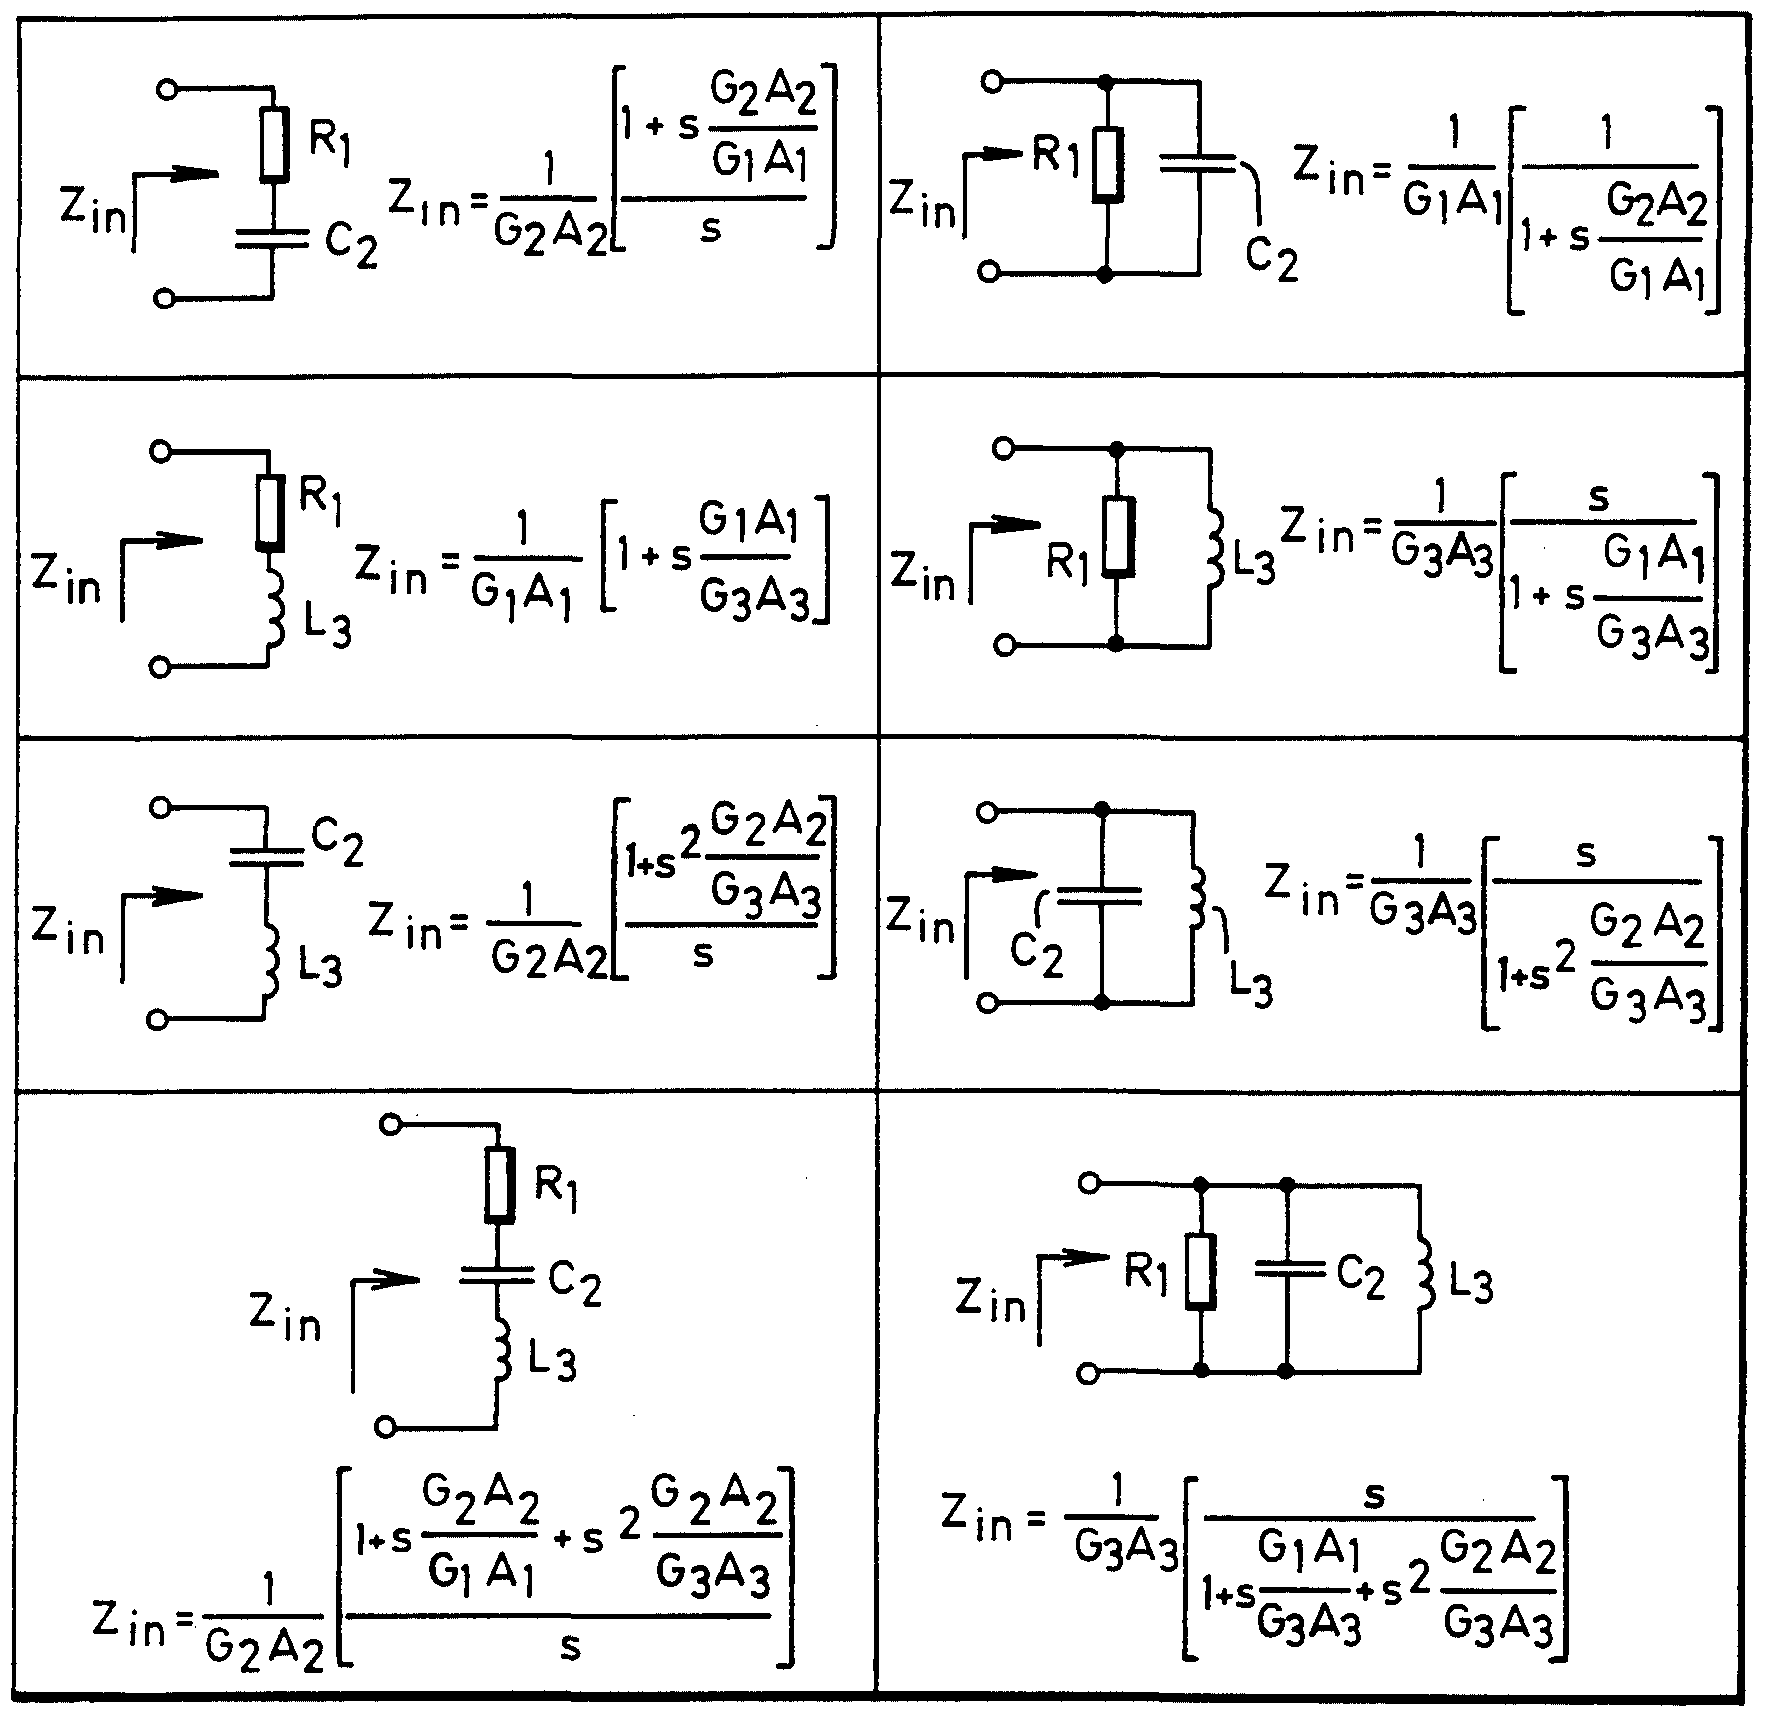 Ohms Law For Ac Circuits also Circ circ additionally DC 10 further plex Circuits in addition Three Phase Motor Star Delta Reverse Forward Timer Power Diagram. on series parallel dc circuits